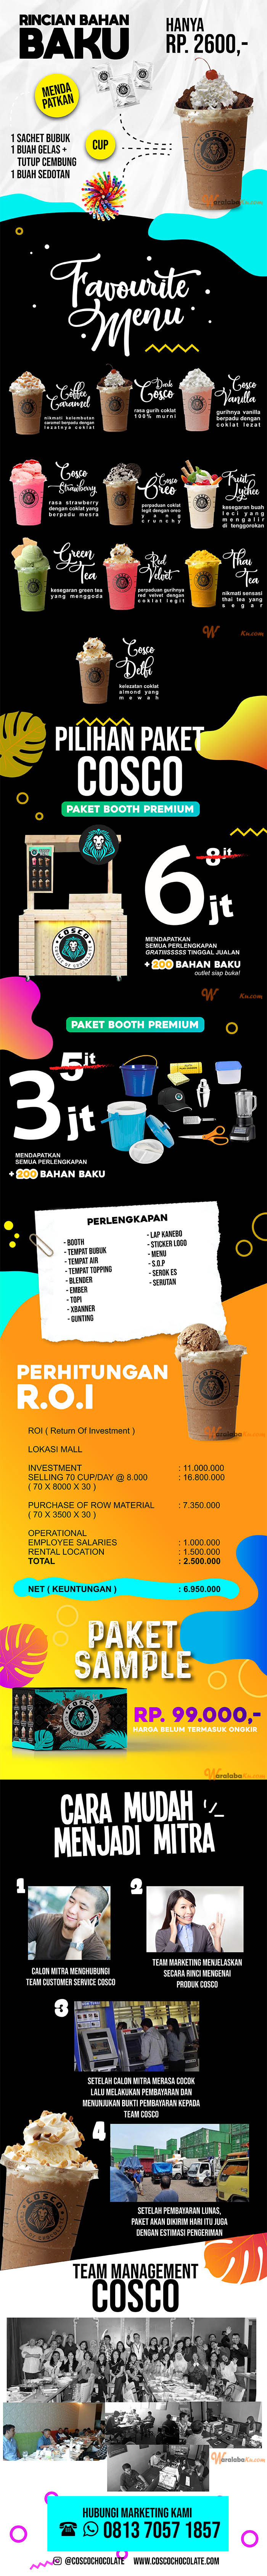 Franchise Peluang Usaha Minuman COSCO (CHOISE OF CHOCOLATE)